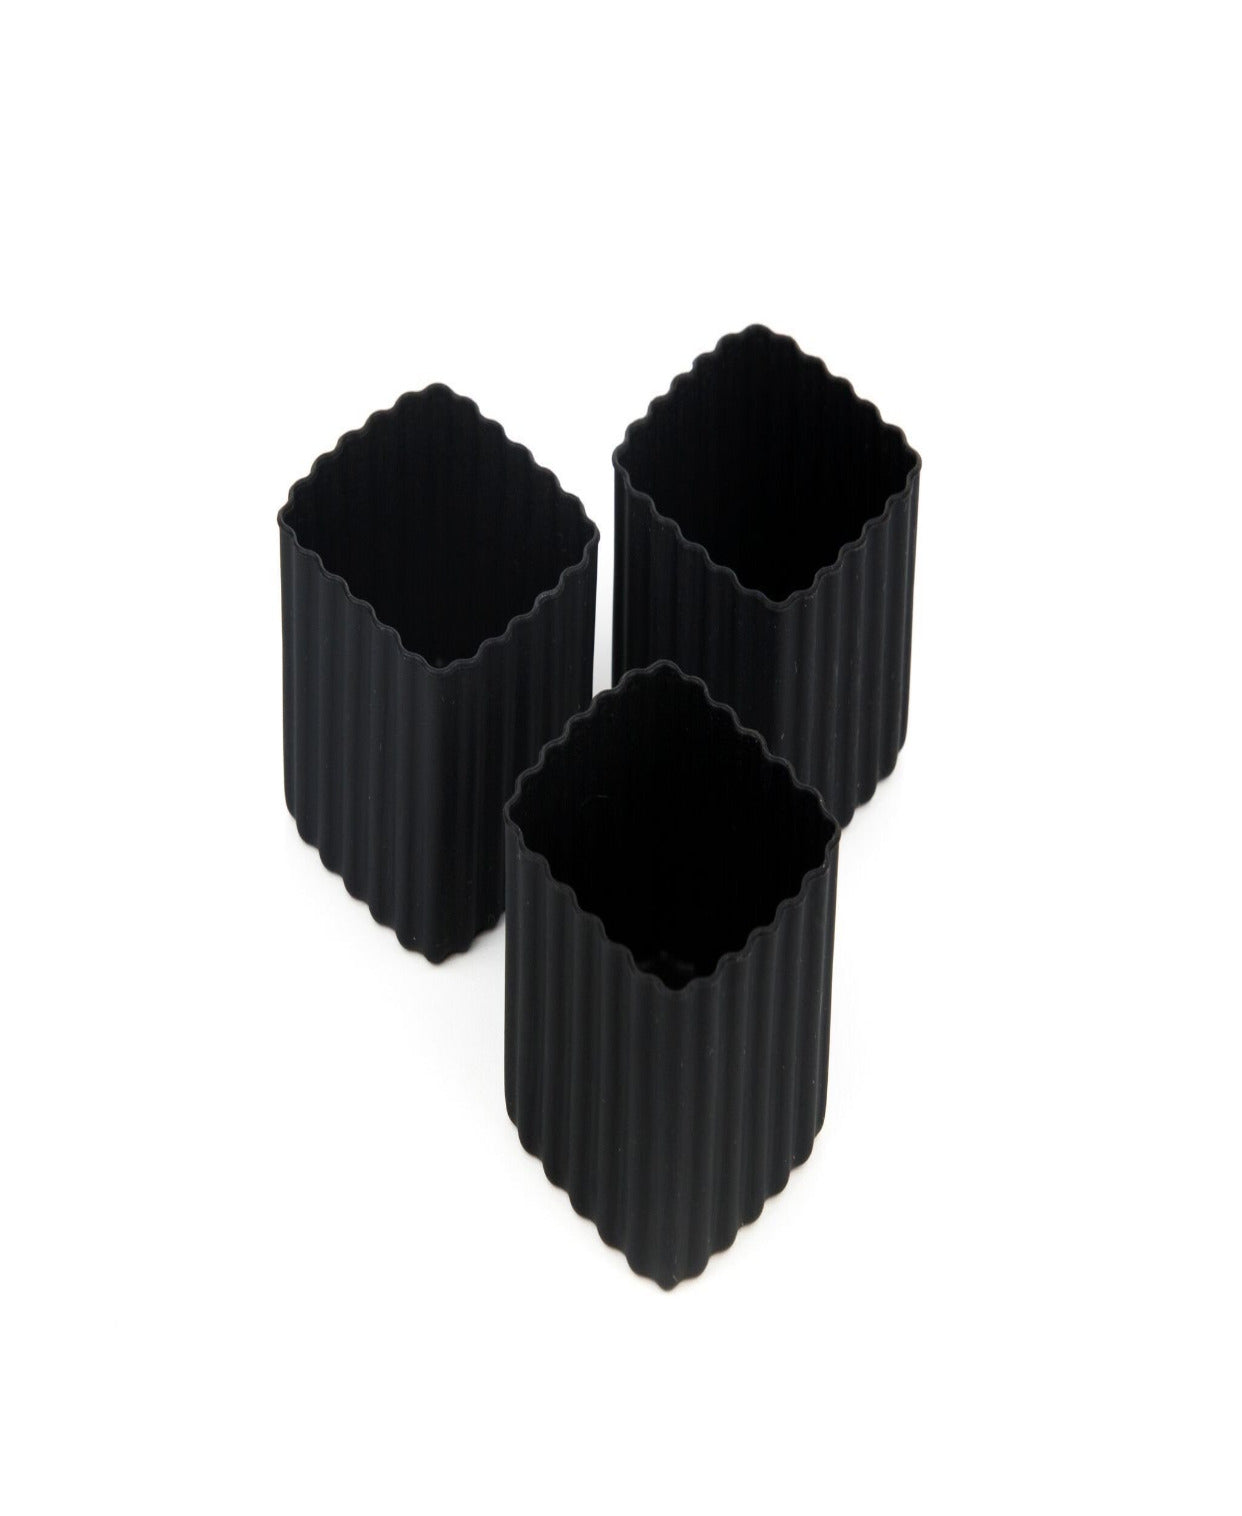 Bento cups black square